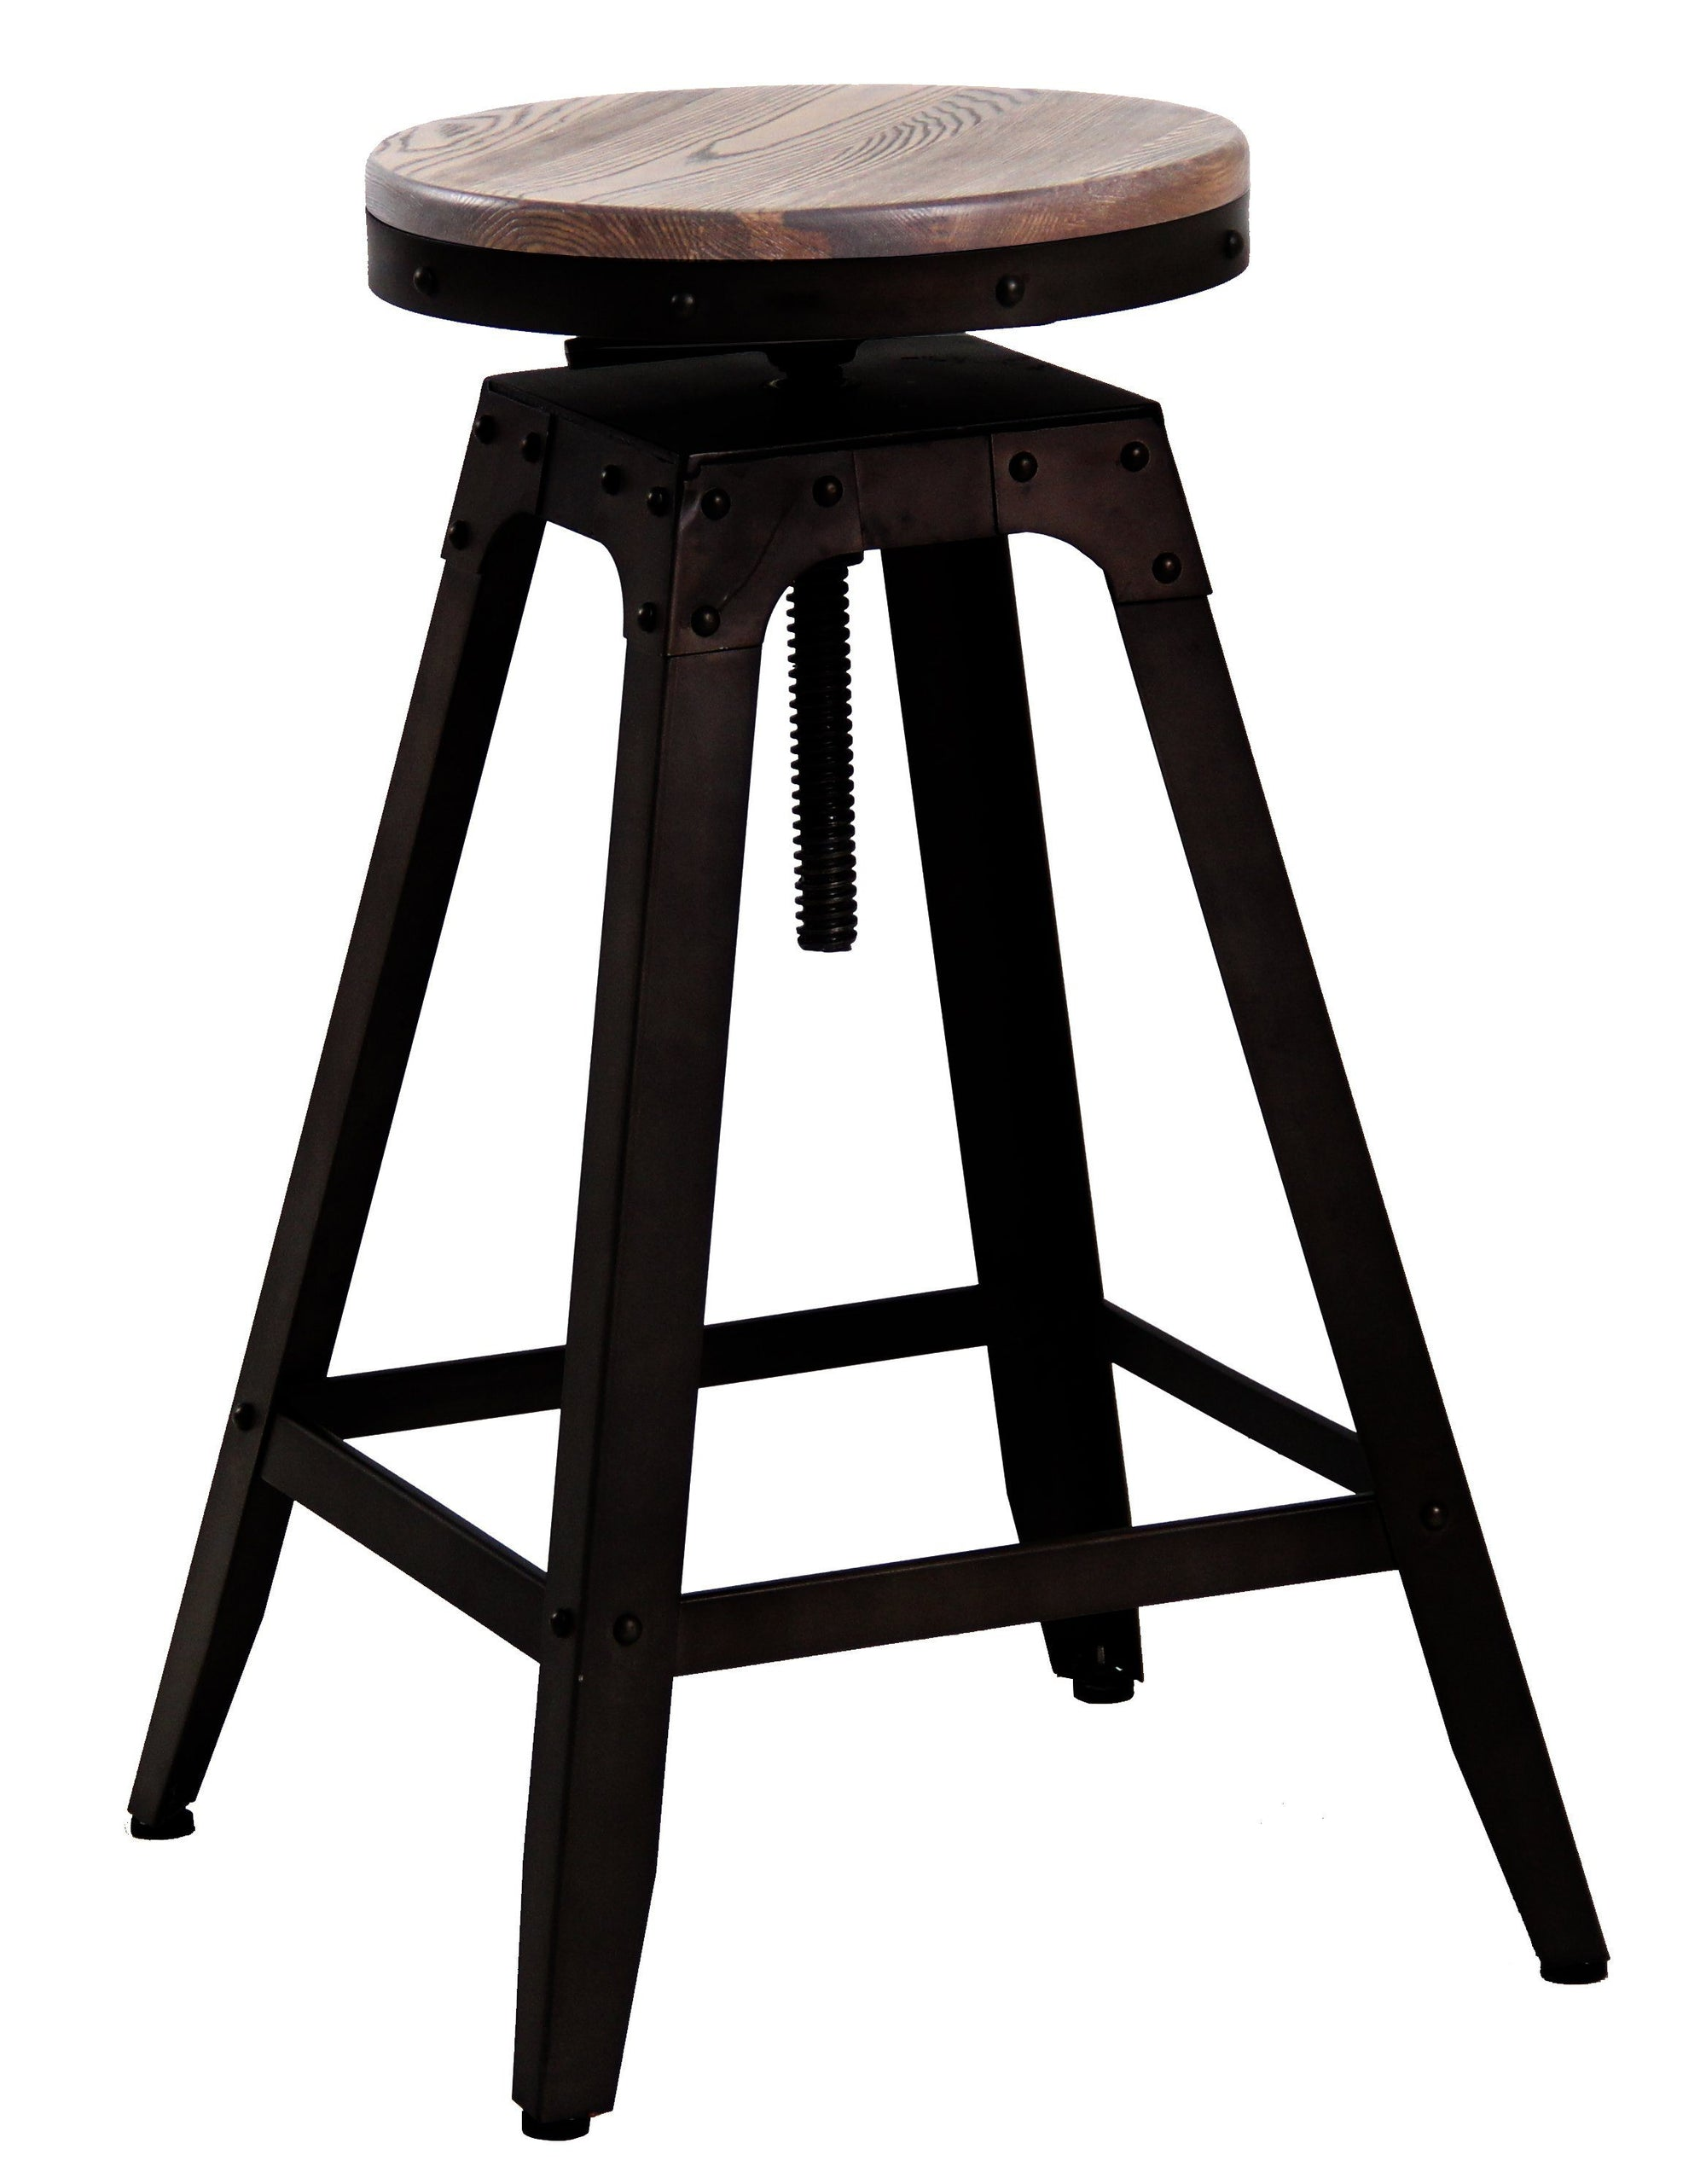 Adjustable Swivel Industrial Bar Stool | 360HomeWare